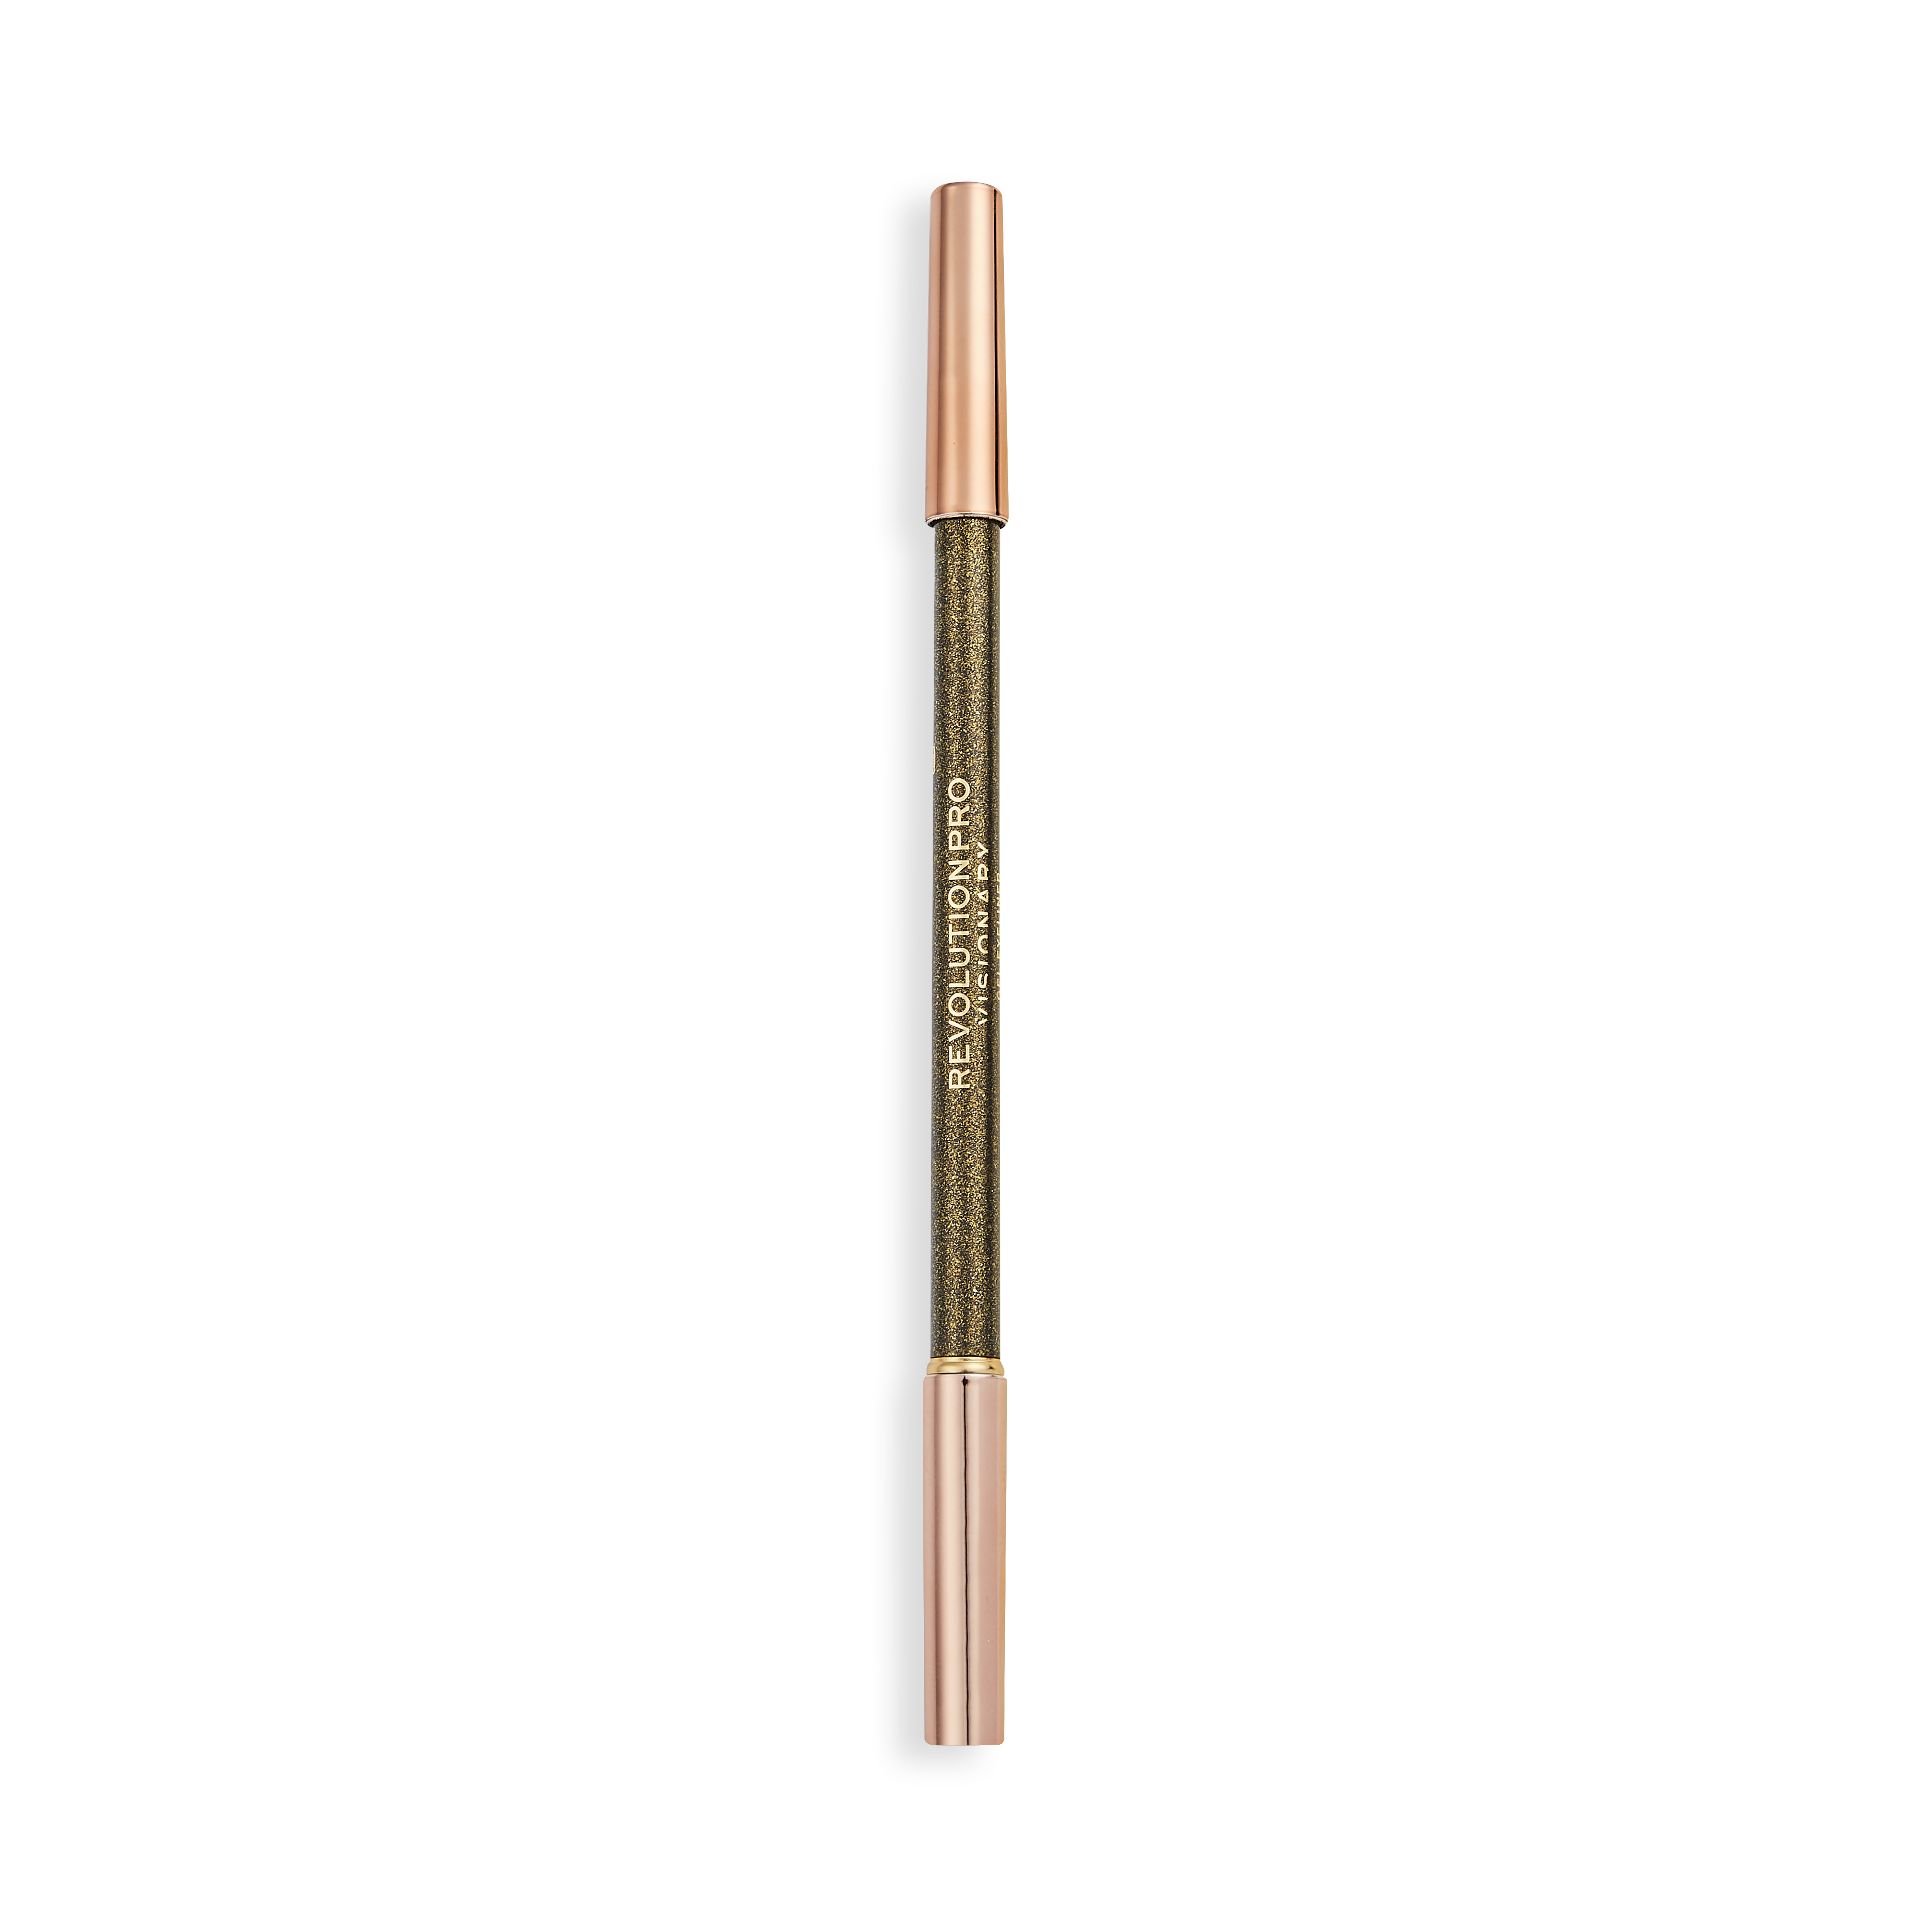 Build your own bundle of three Revolution Pro Visionary Liners and Save 38%